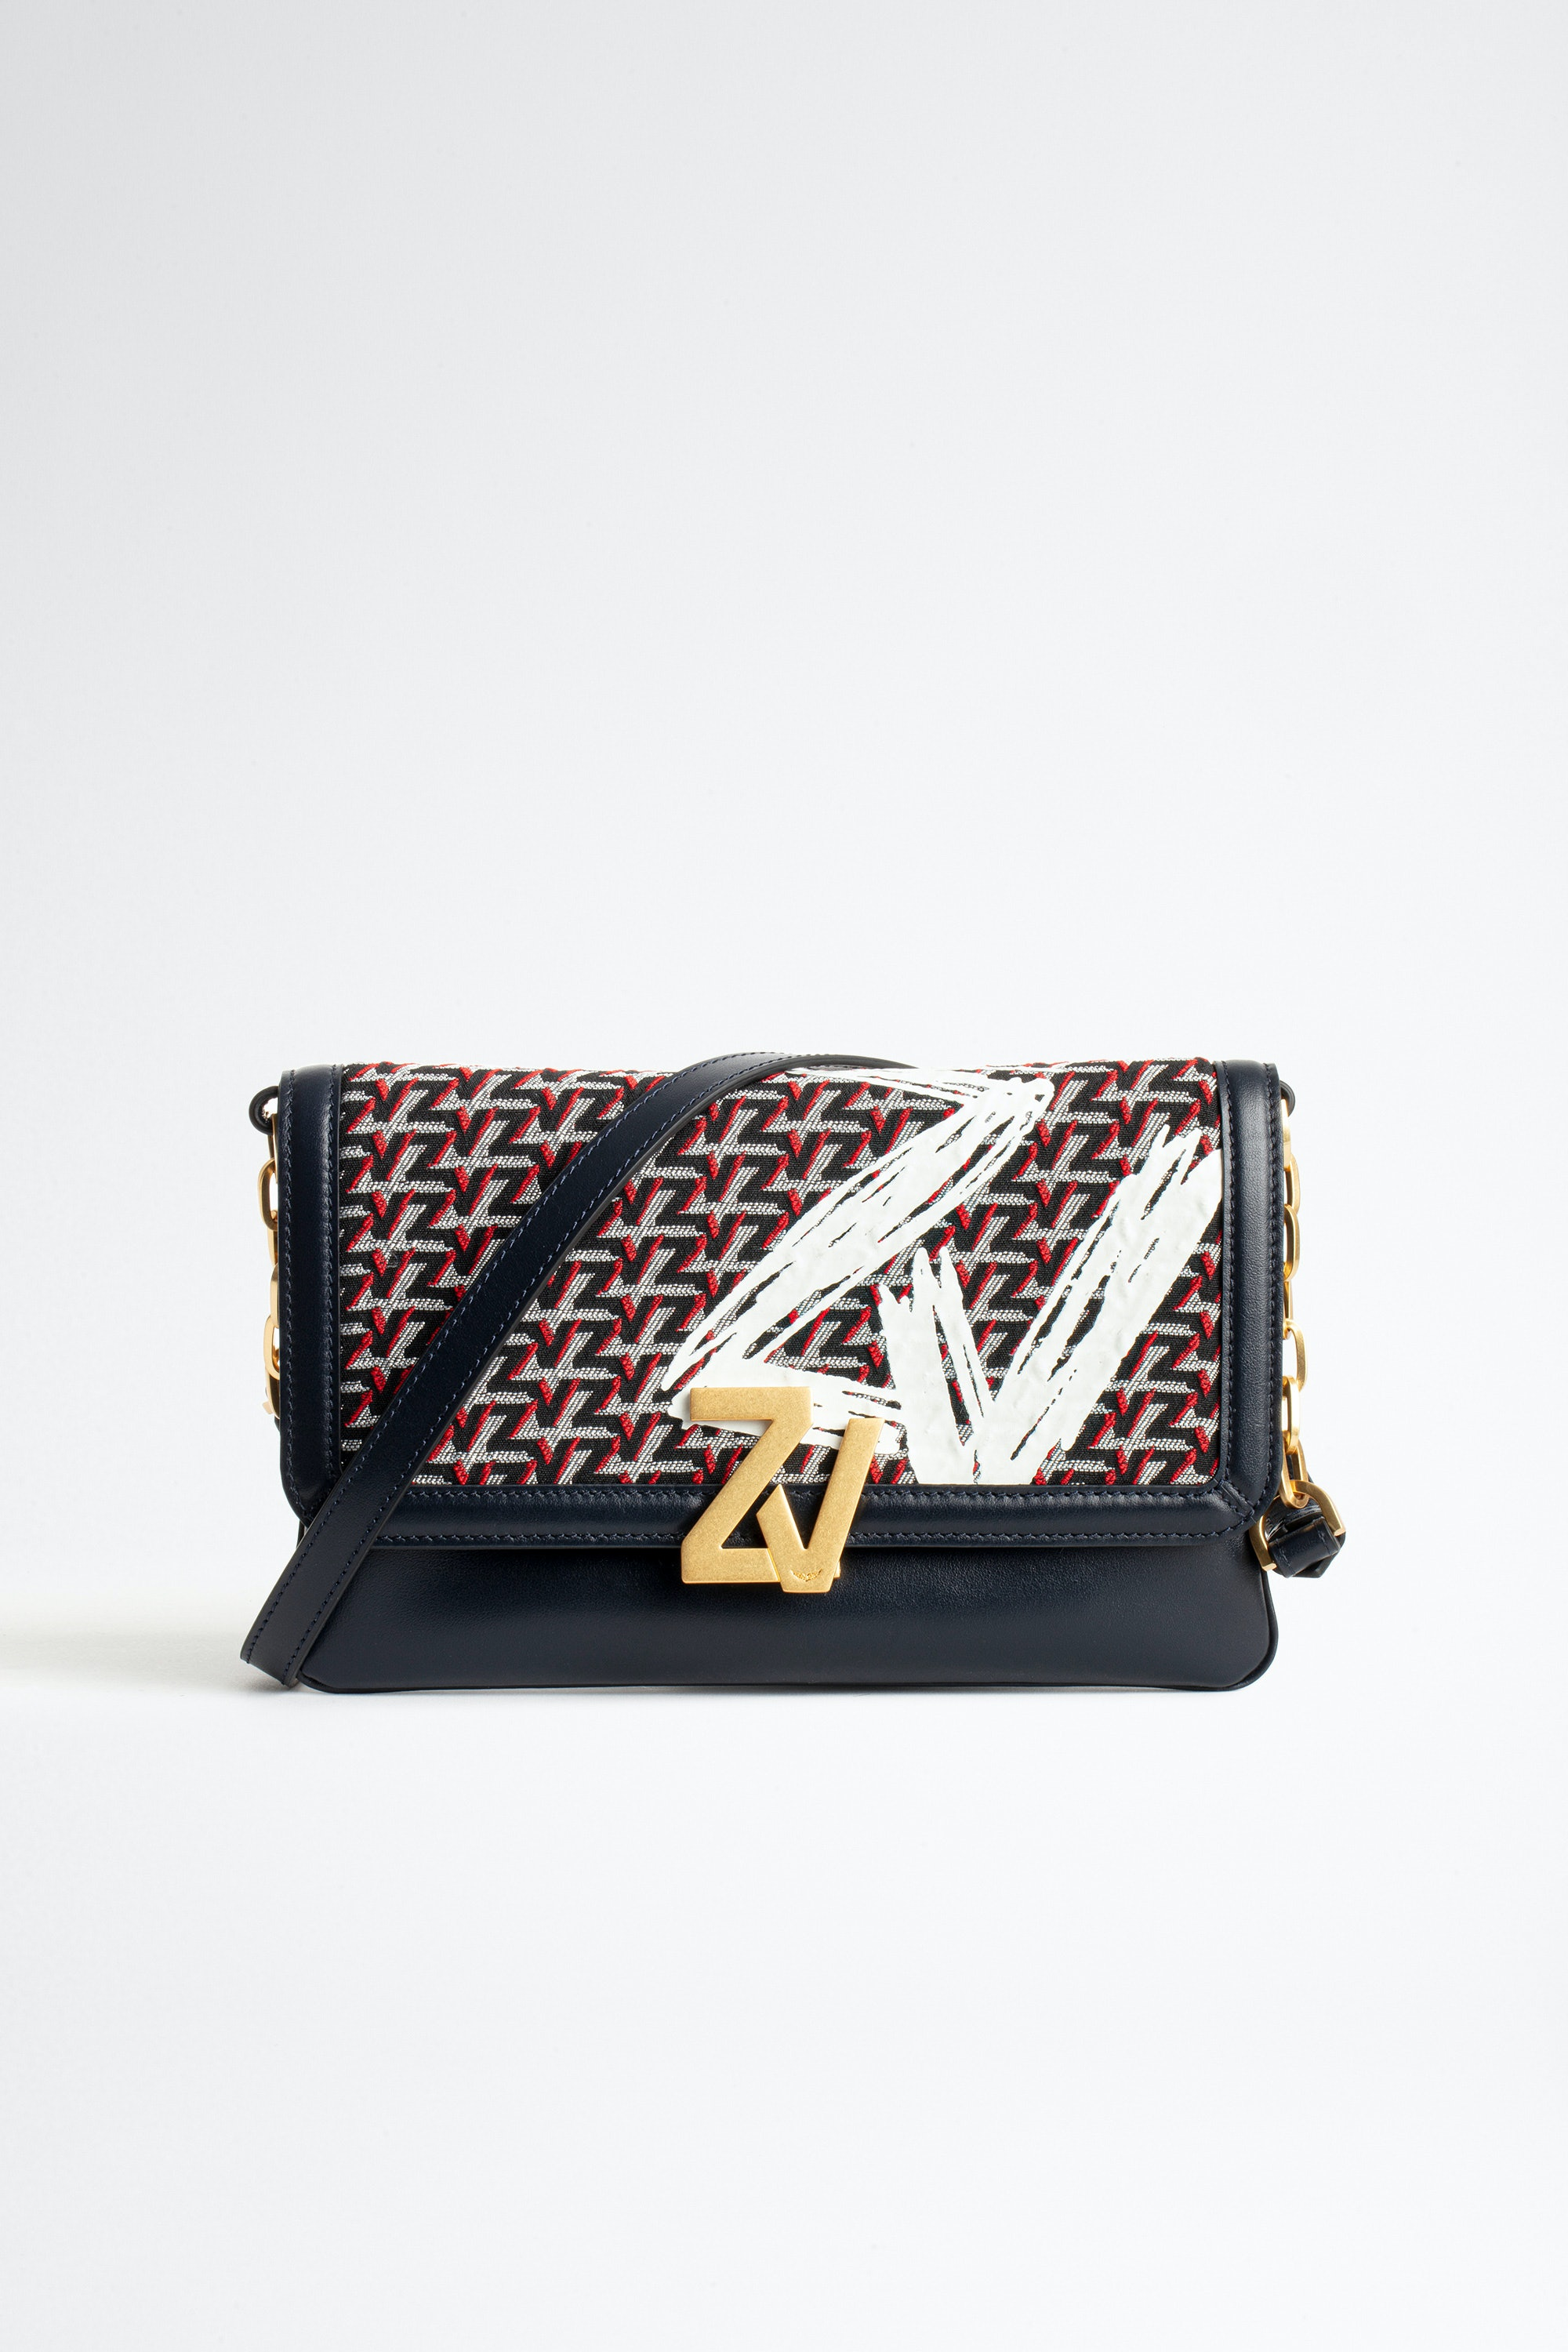 ZV Initiale clutch bag Coat of arms monogram